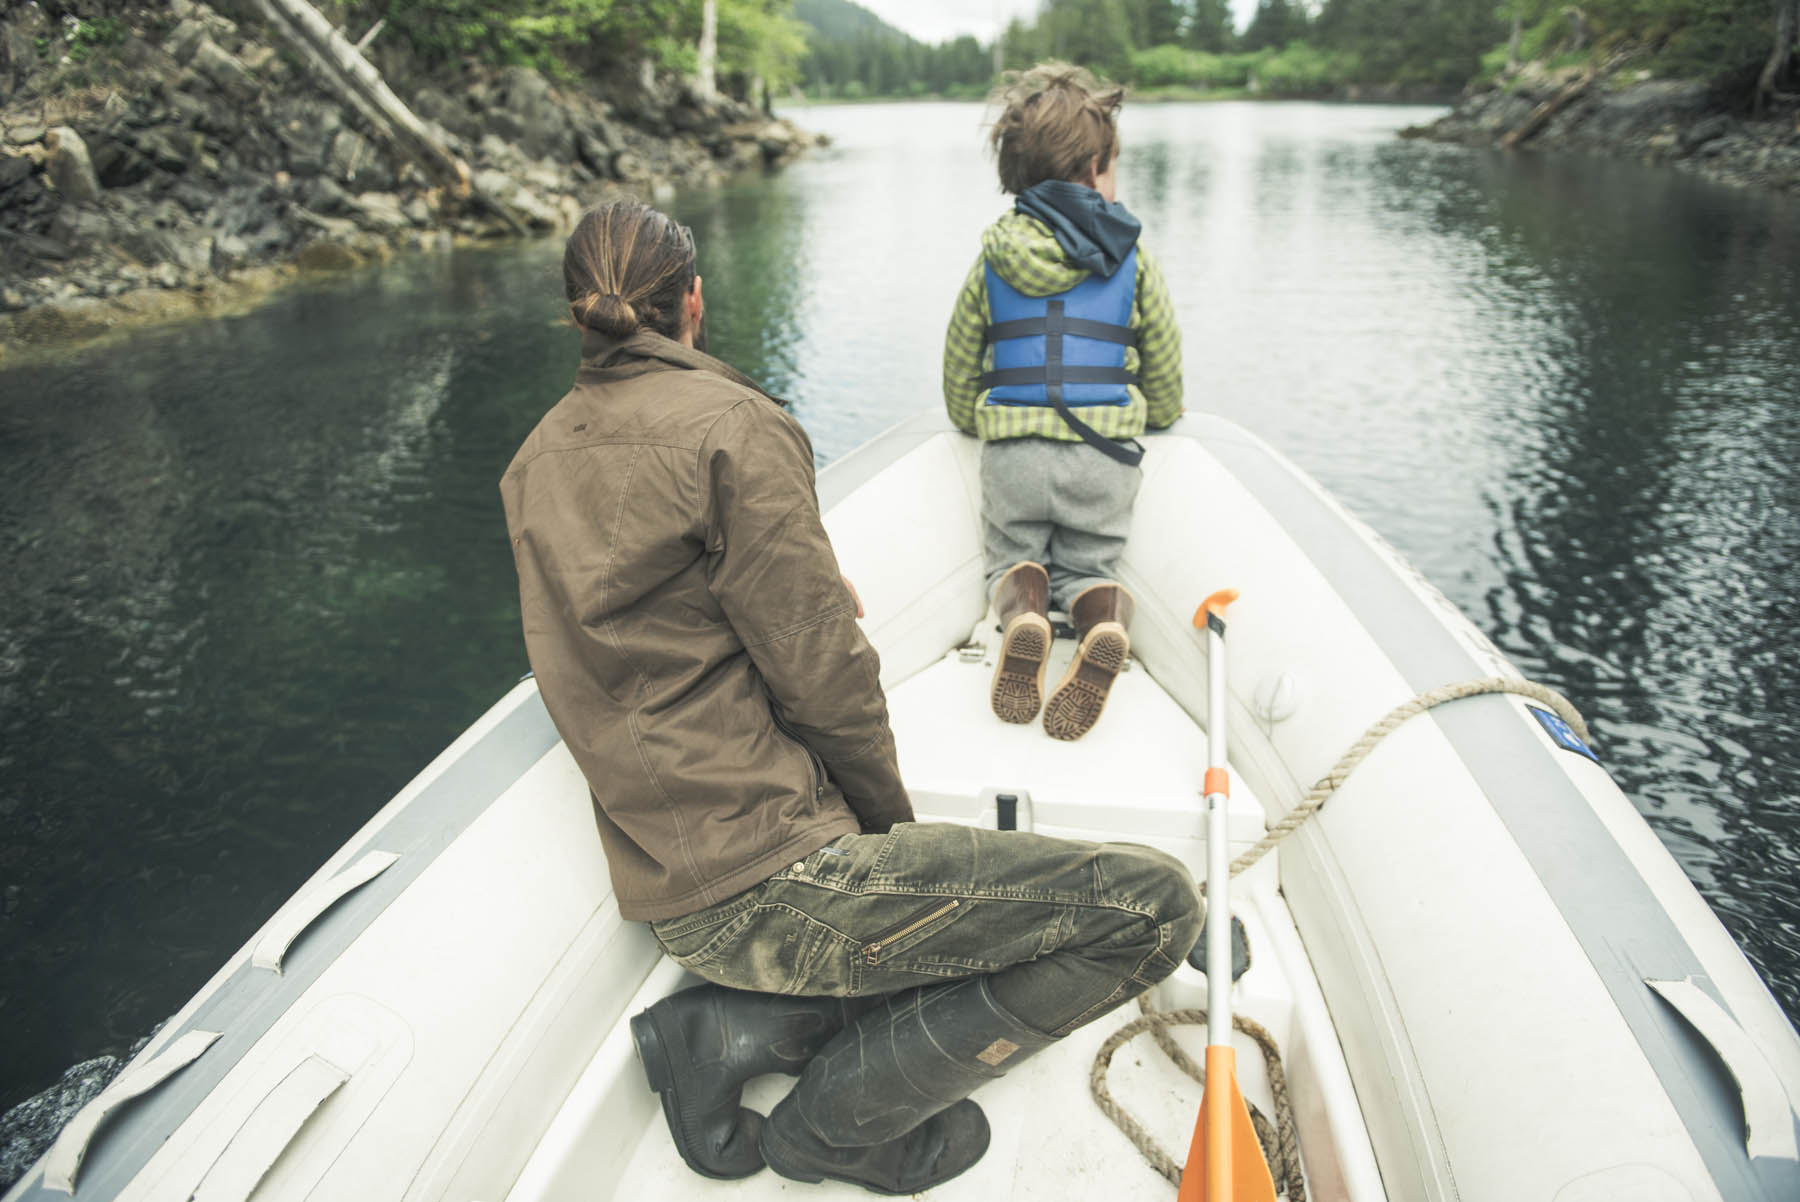 Lessons from Dad - a man and his son looking down the lake in a boat